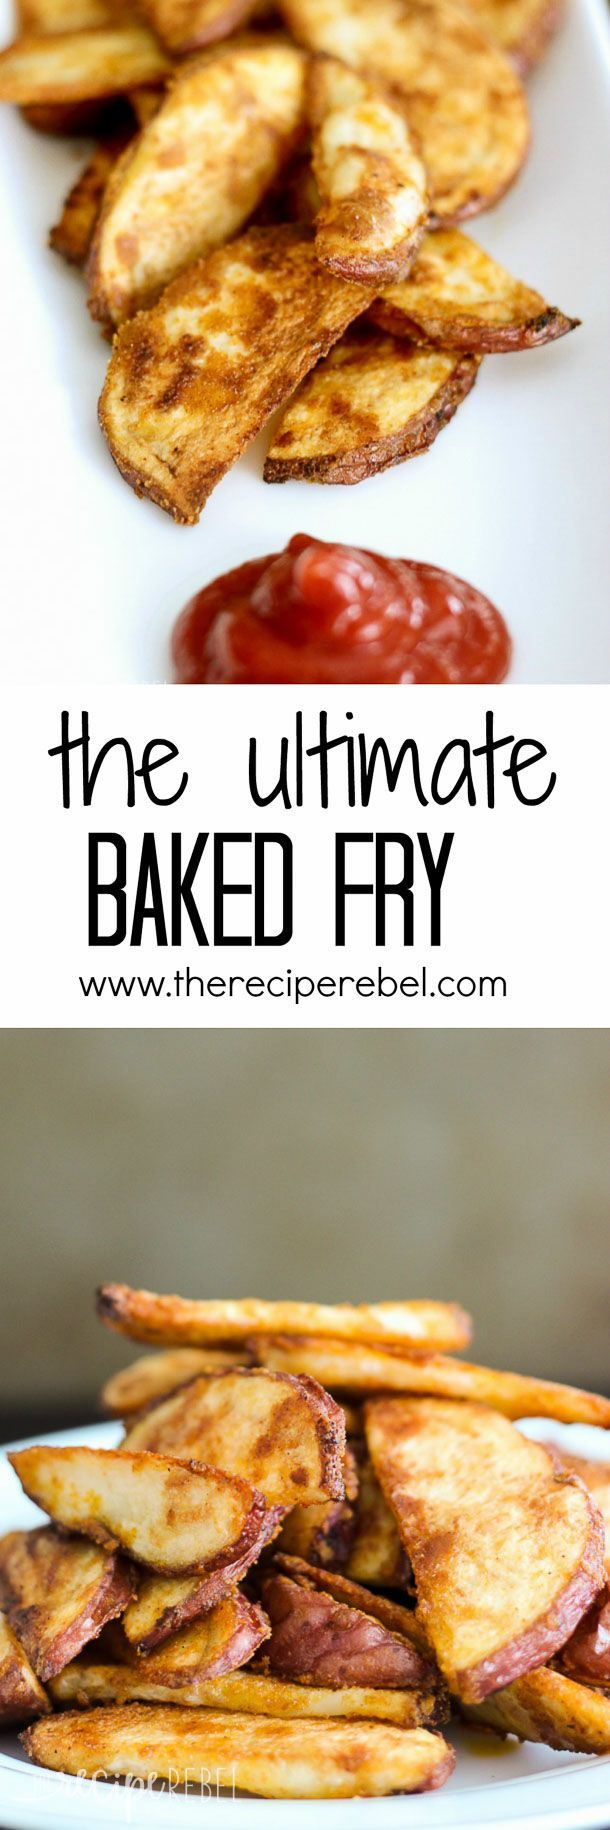 The Ultimate Baked Fry: Perfectly crispy oven-baked fries every time! It's the ultimate baking method + seasoning blend that makes these the best oven fries you've ever had! www.thereciperebel.com